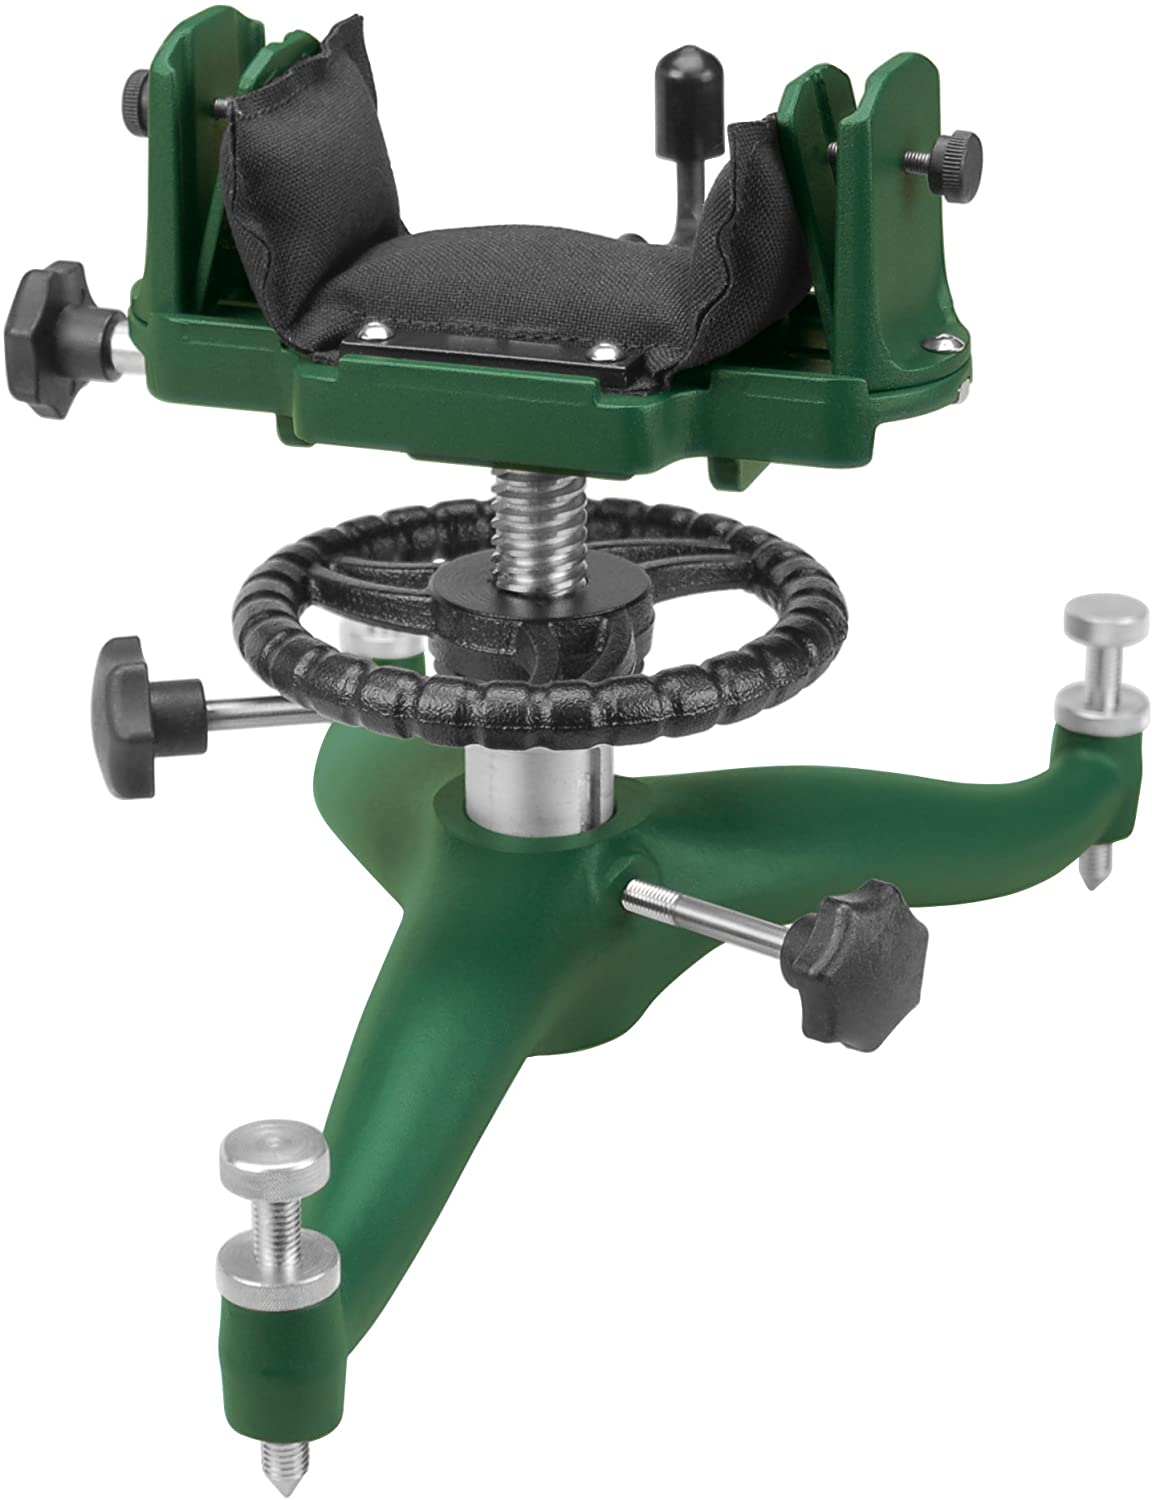 Cladwell the rock BR Outdoor range adjustable rifle stand